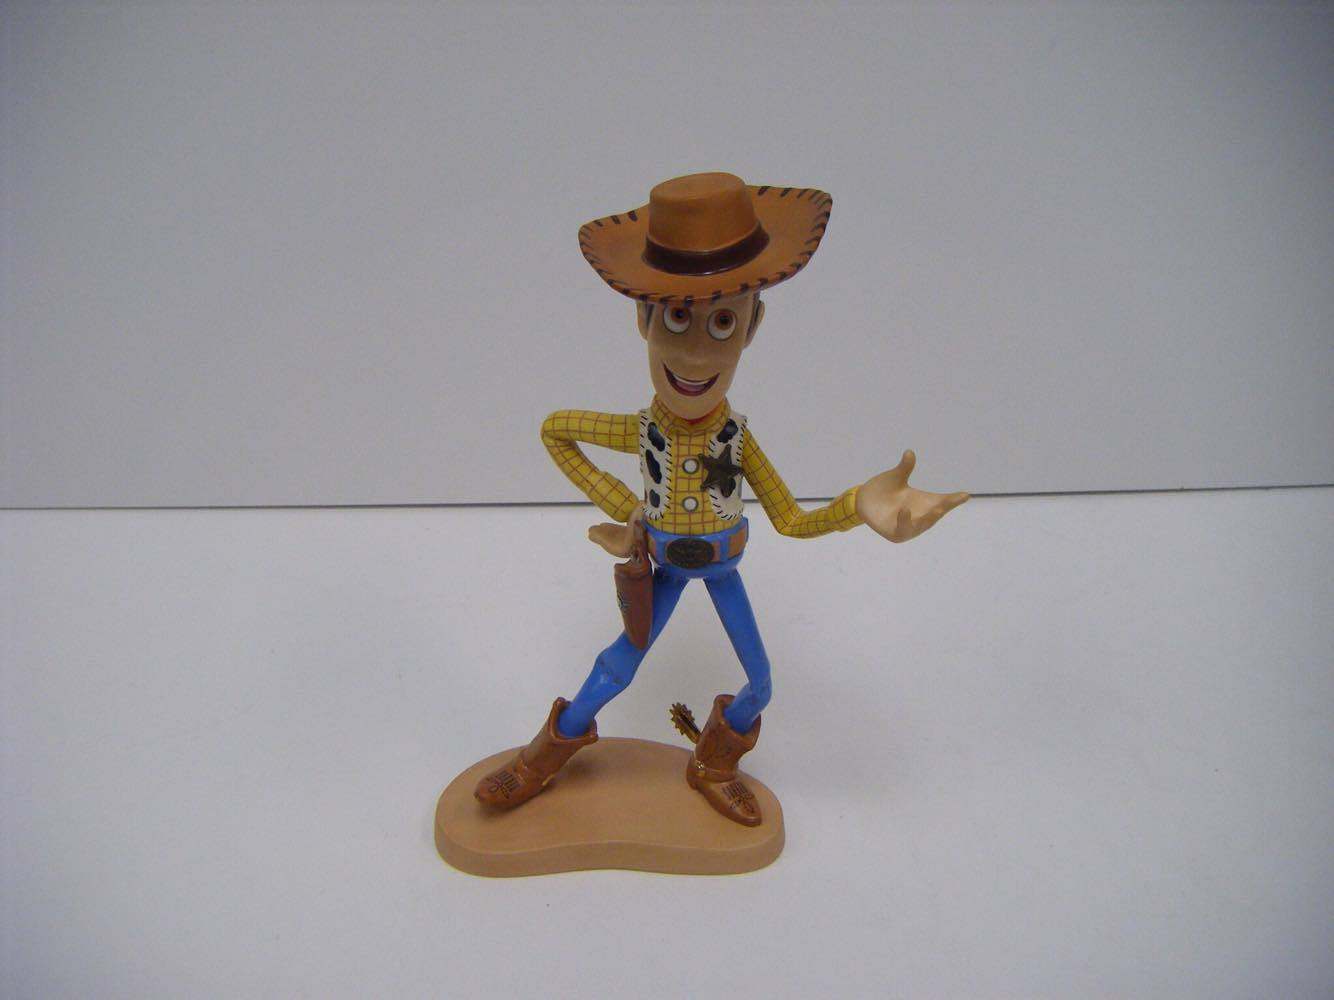 Toy Story Figurines : Toy story miniature figurines character toys for sale ebay